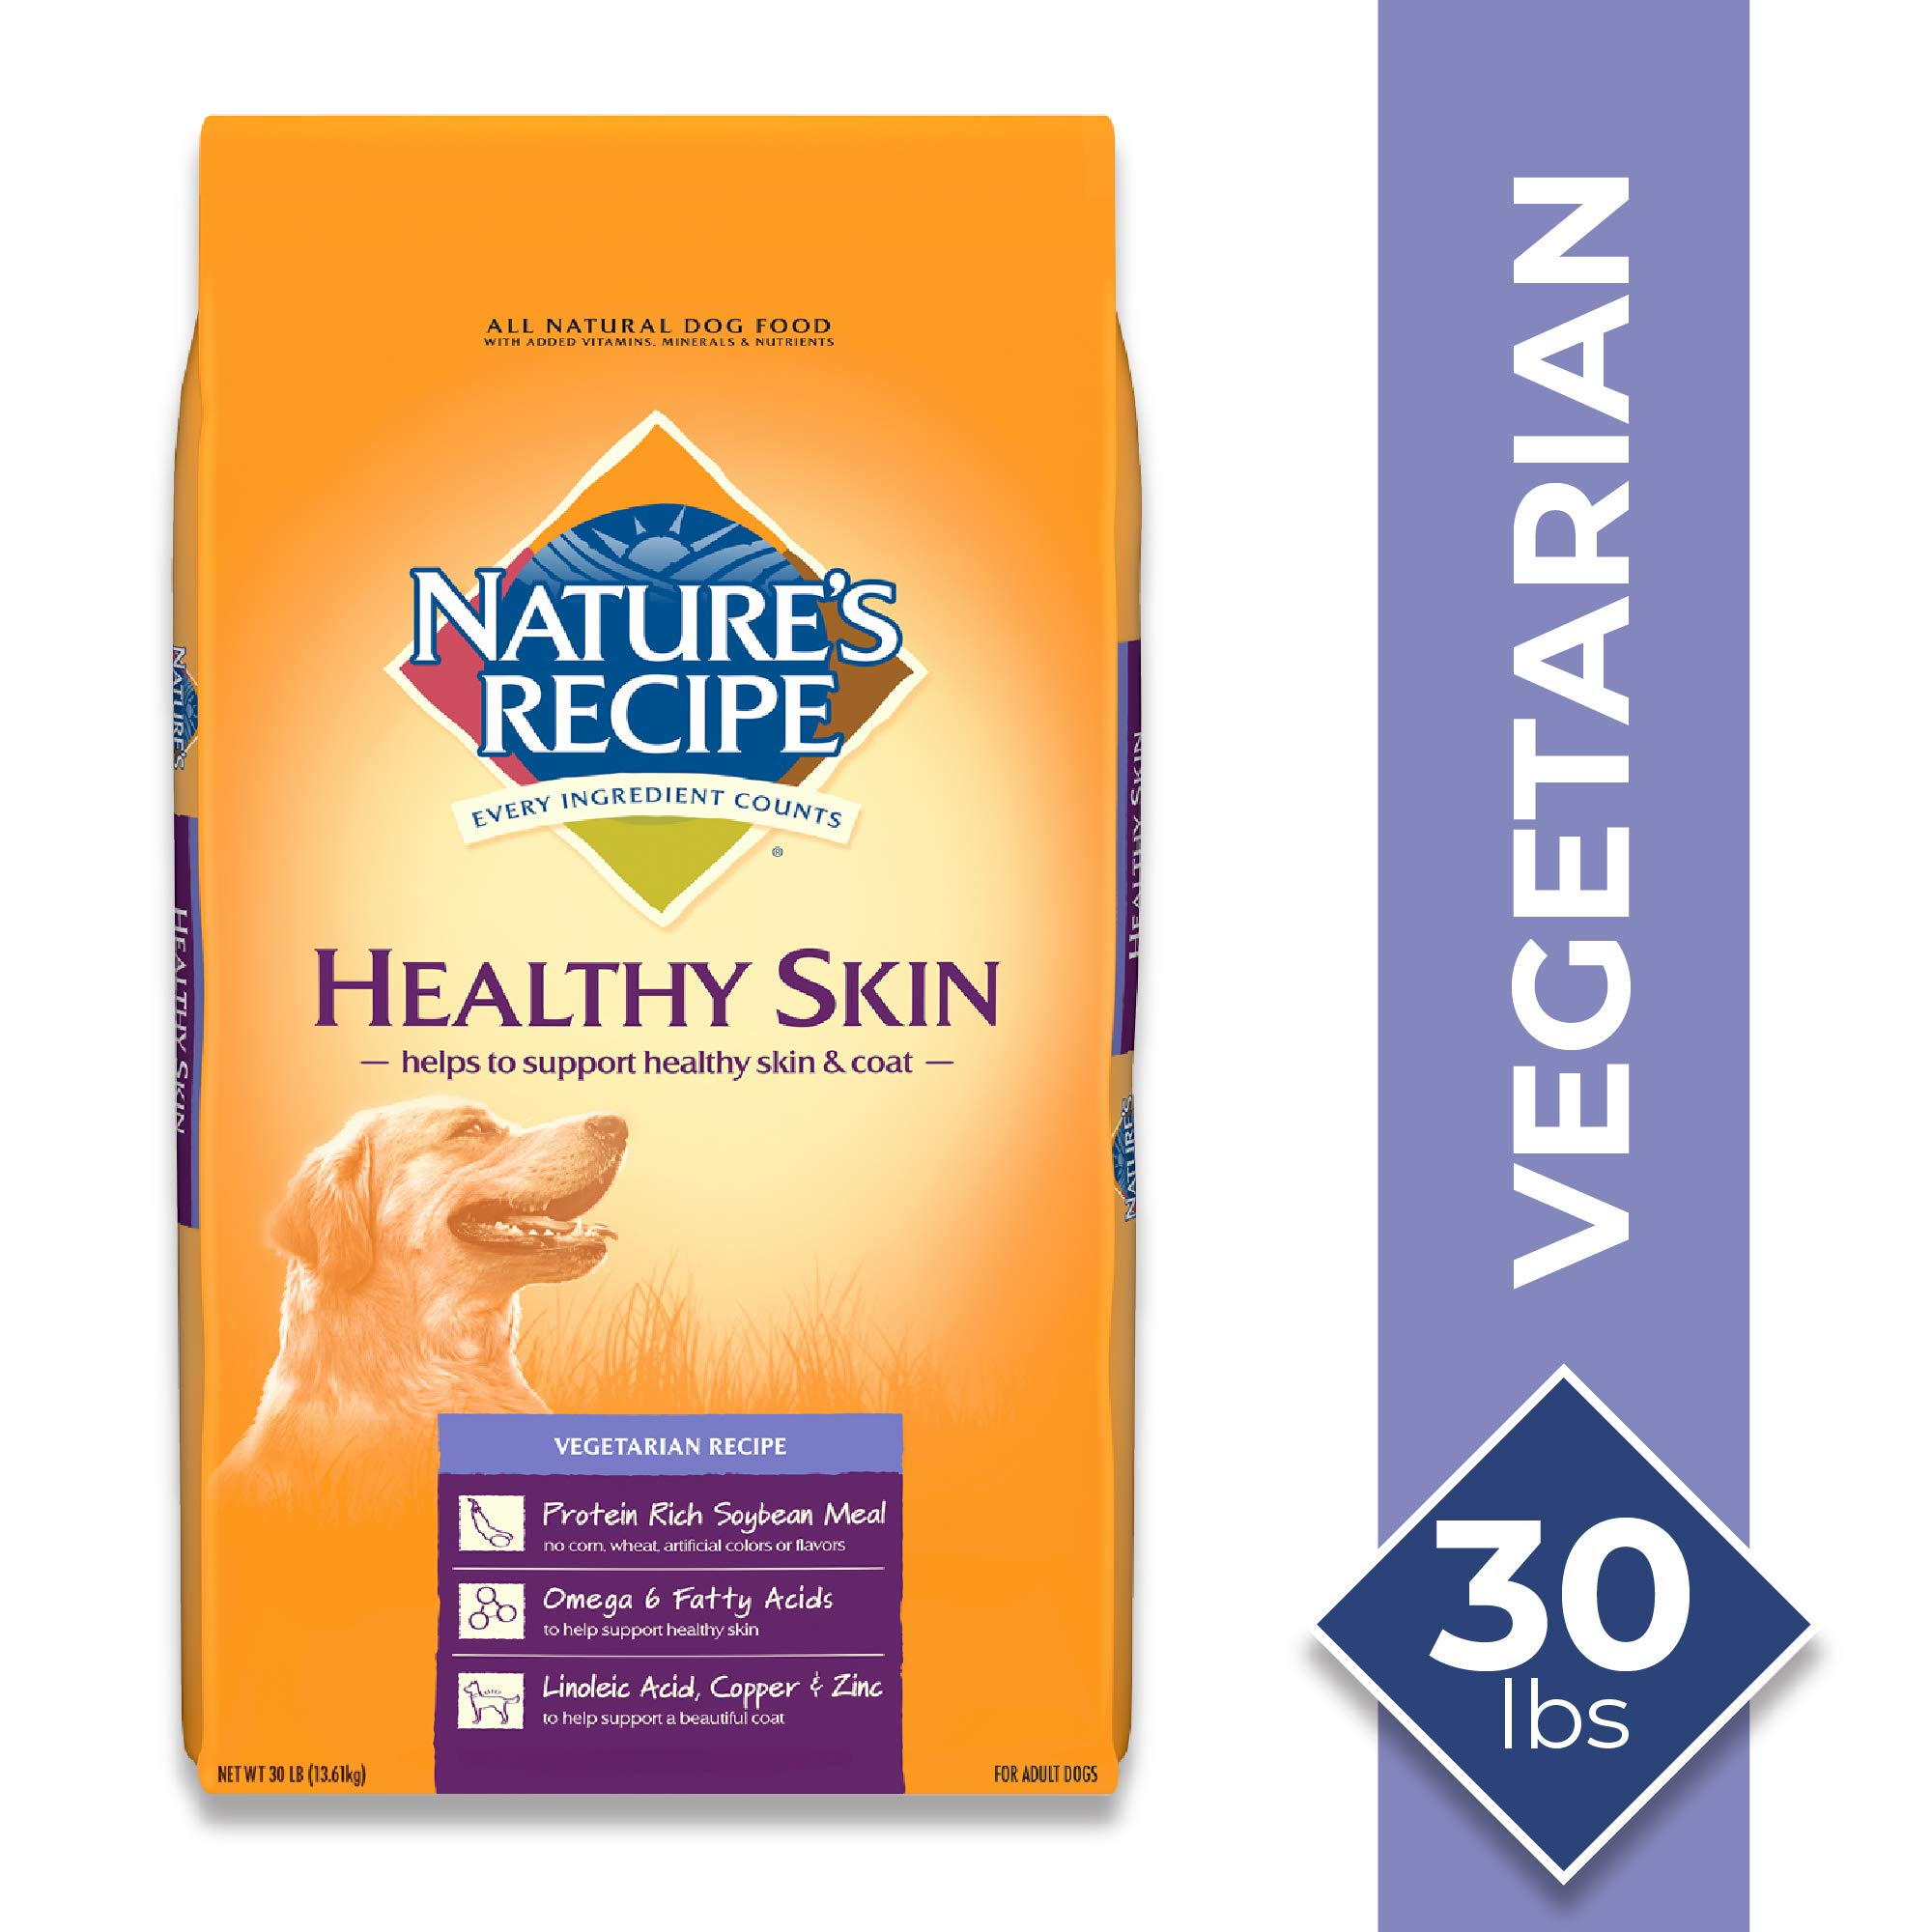 Nature's Recipe Healthy Skin Vegetarian Recipe Dry Dog Food, 30 Pounds by Nature's Recipe